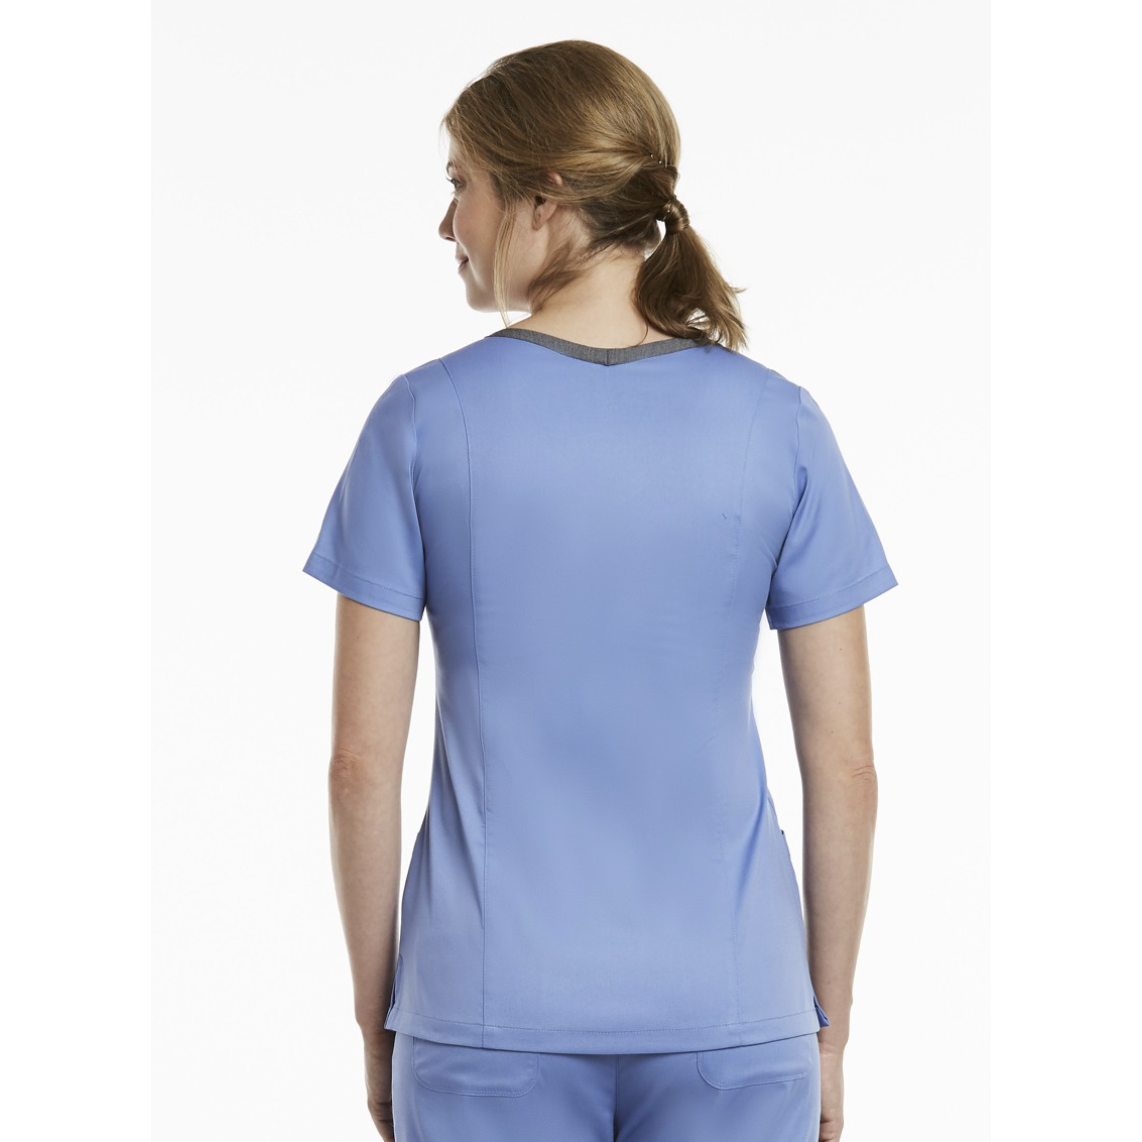 Both Side Contrast V-Nect Top 3502 (XL-3XL)